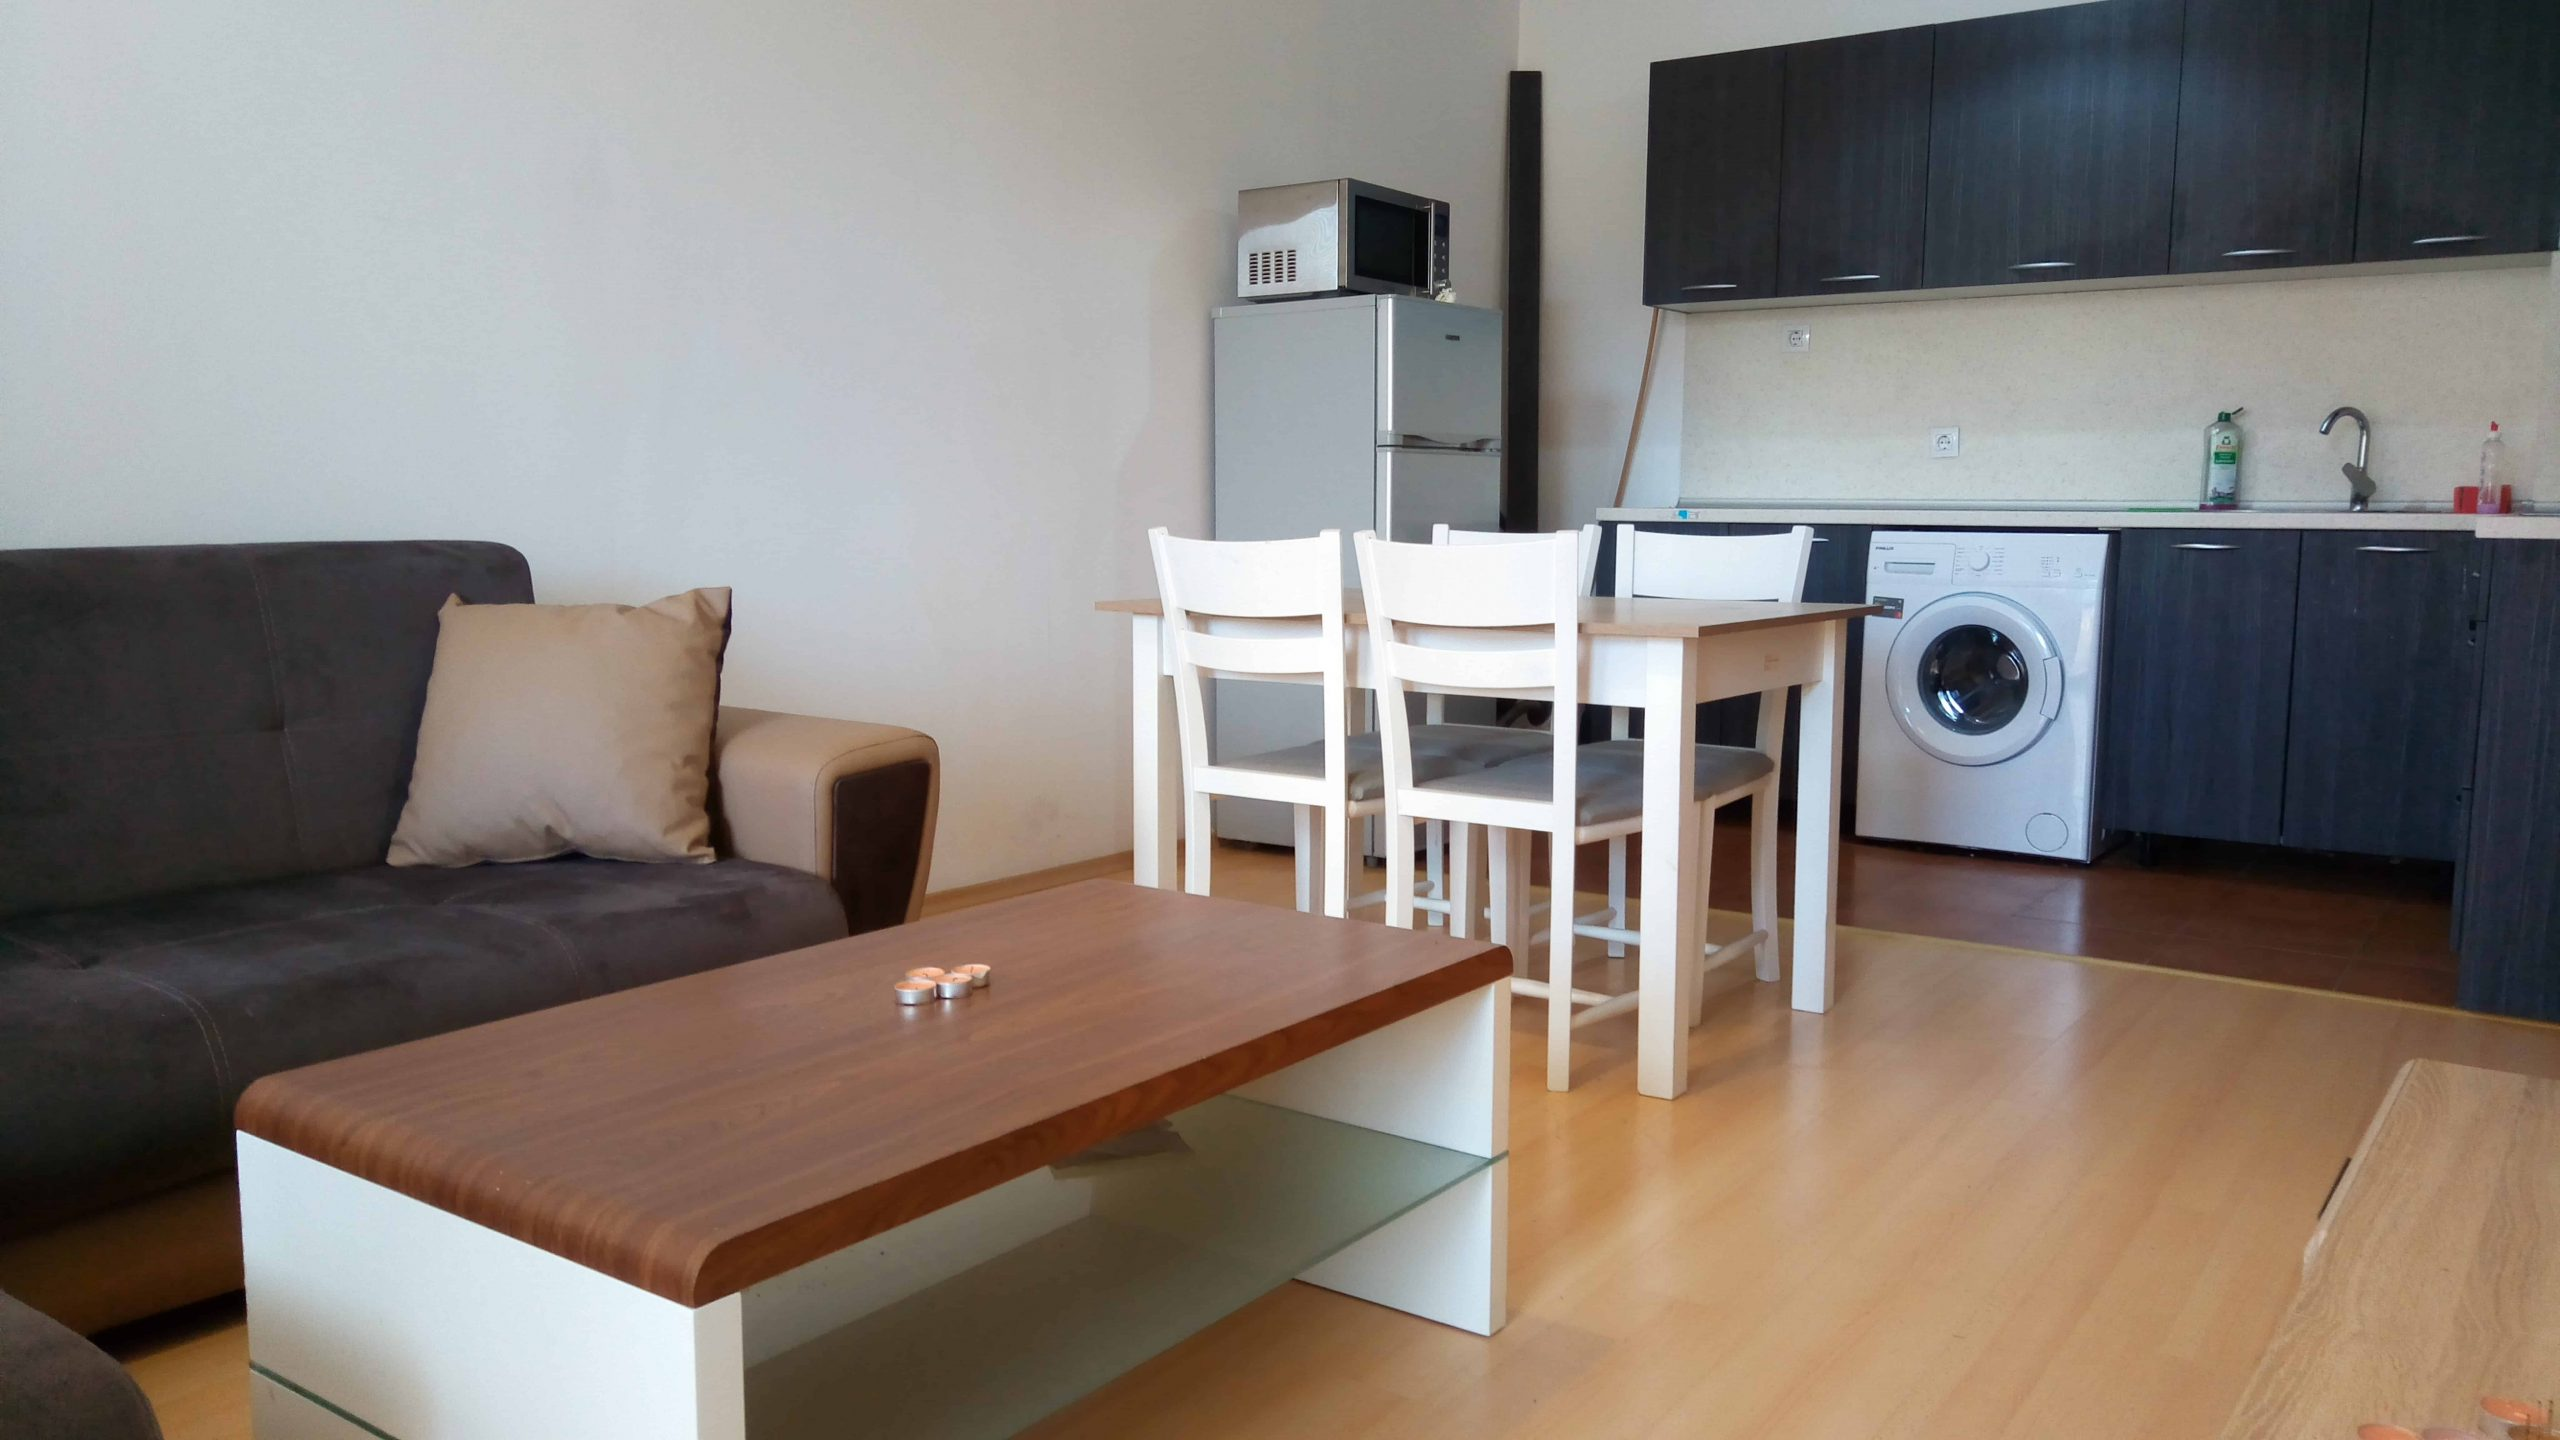 1 bedroom apartment in a residential building